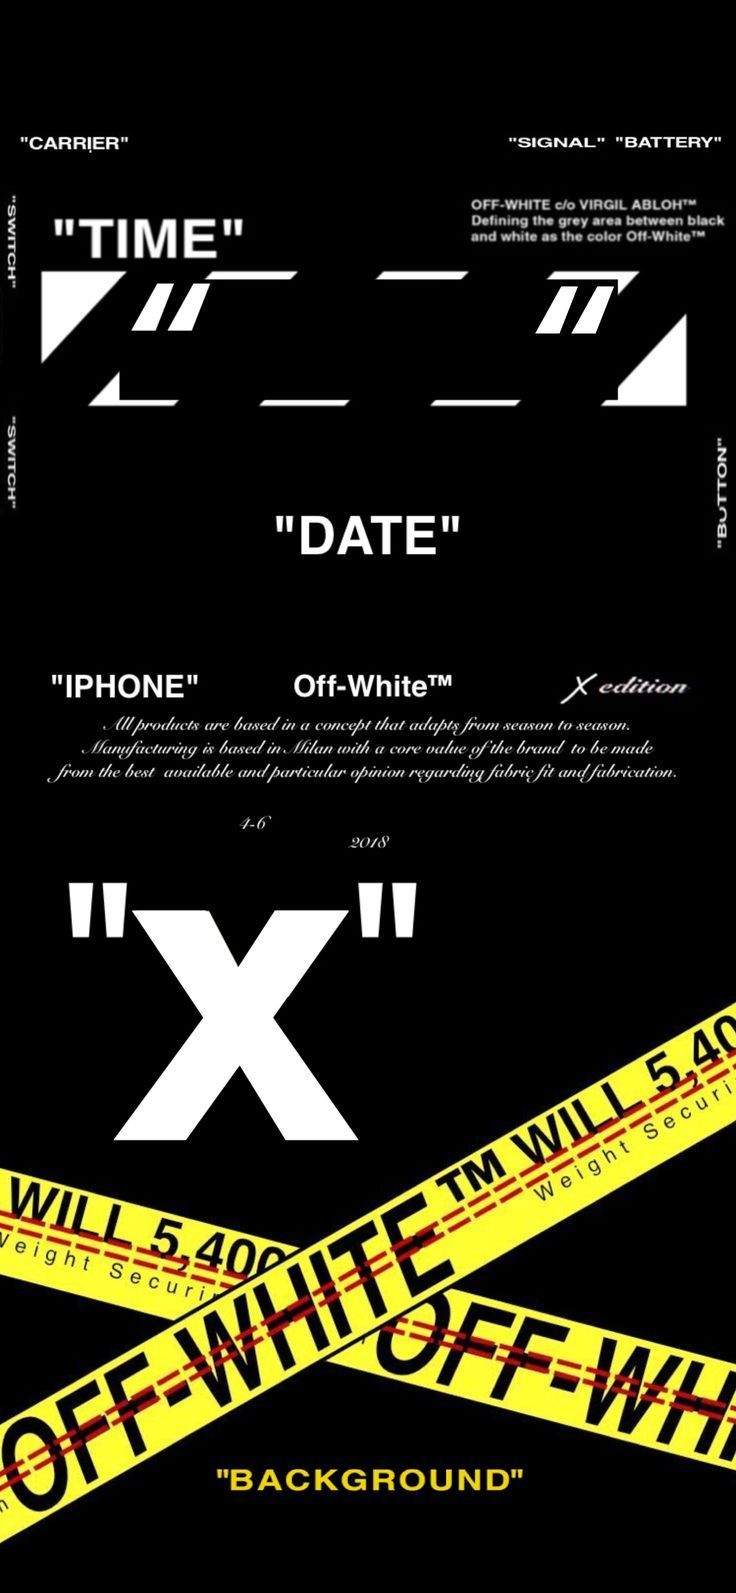 X Edition Off White Wallpaper White Wallpaper For Iphone Iphone Wallpaper Off White Samsung Wallpaper